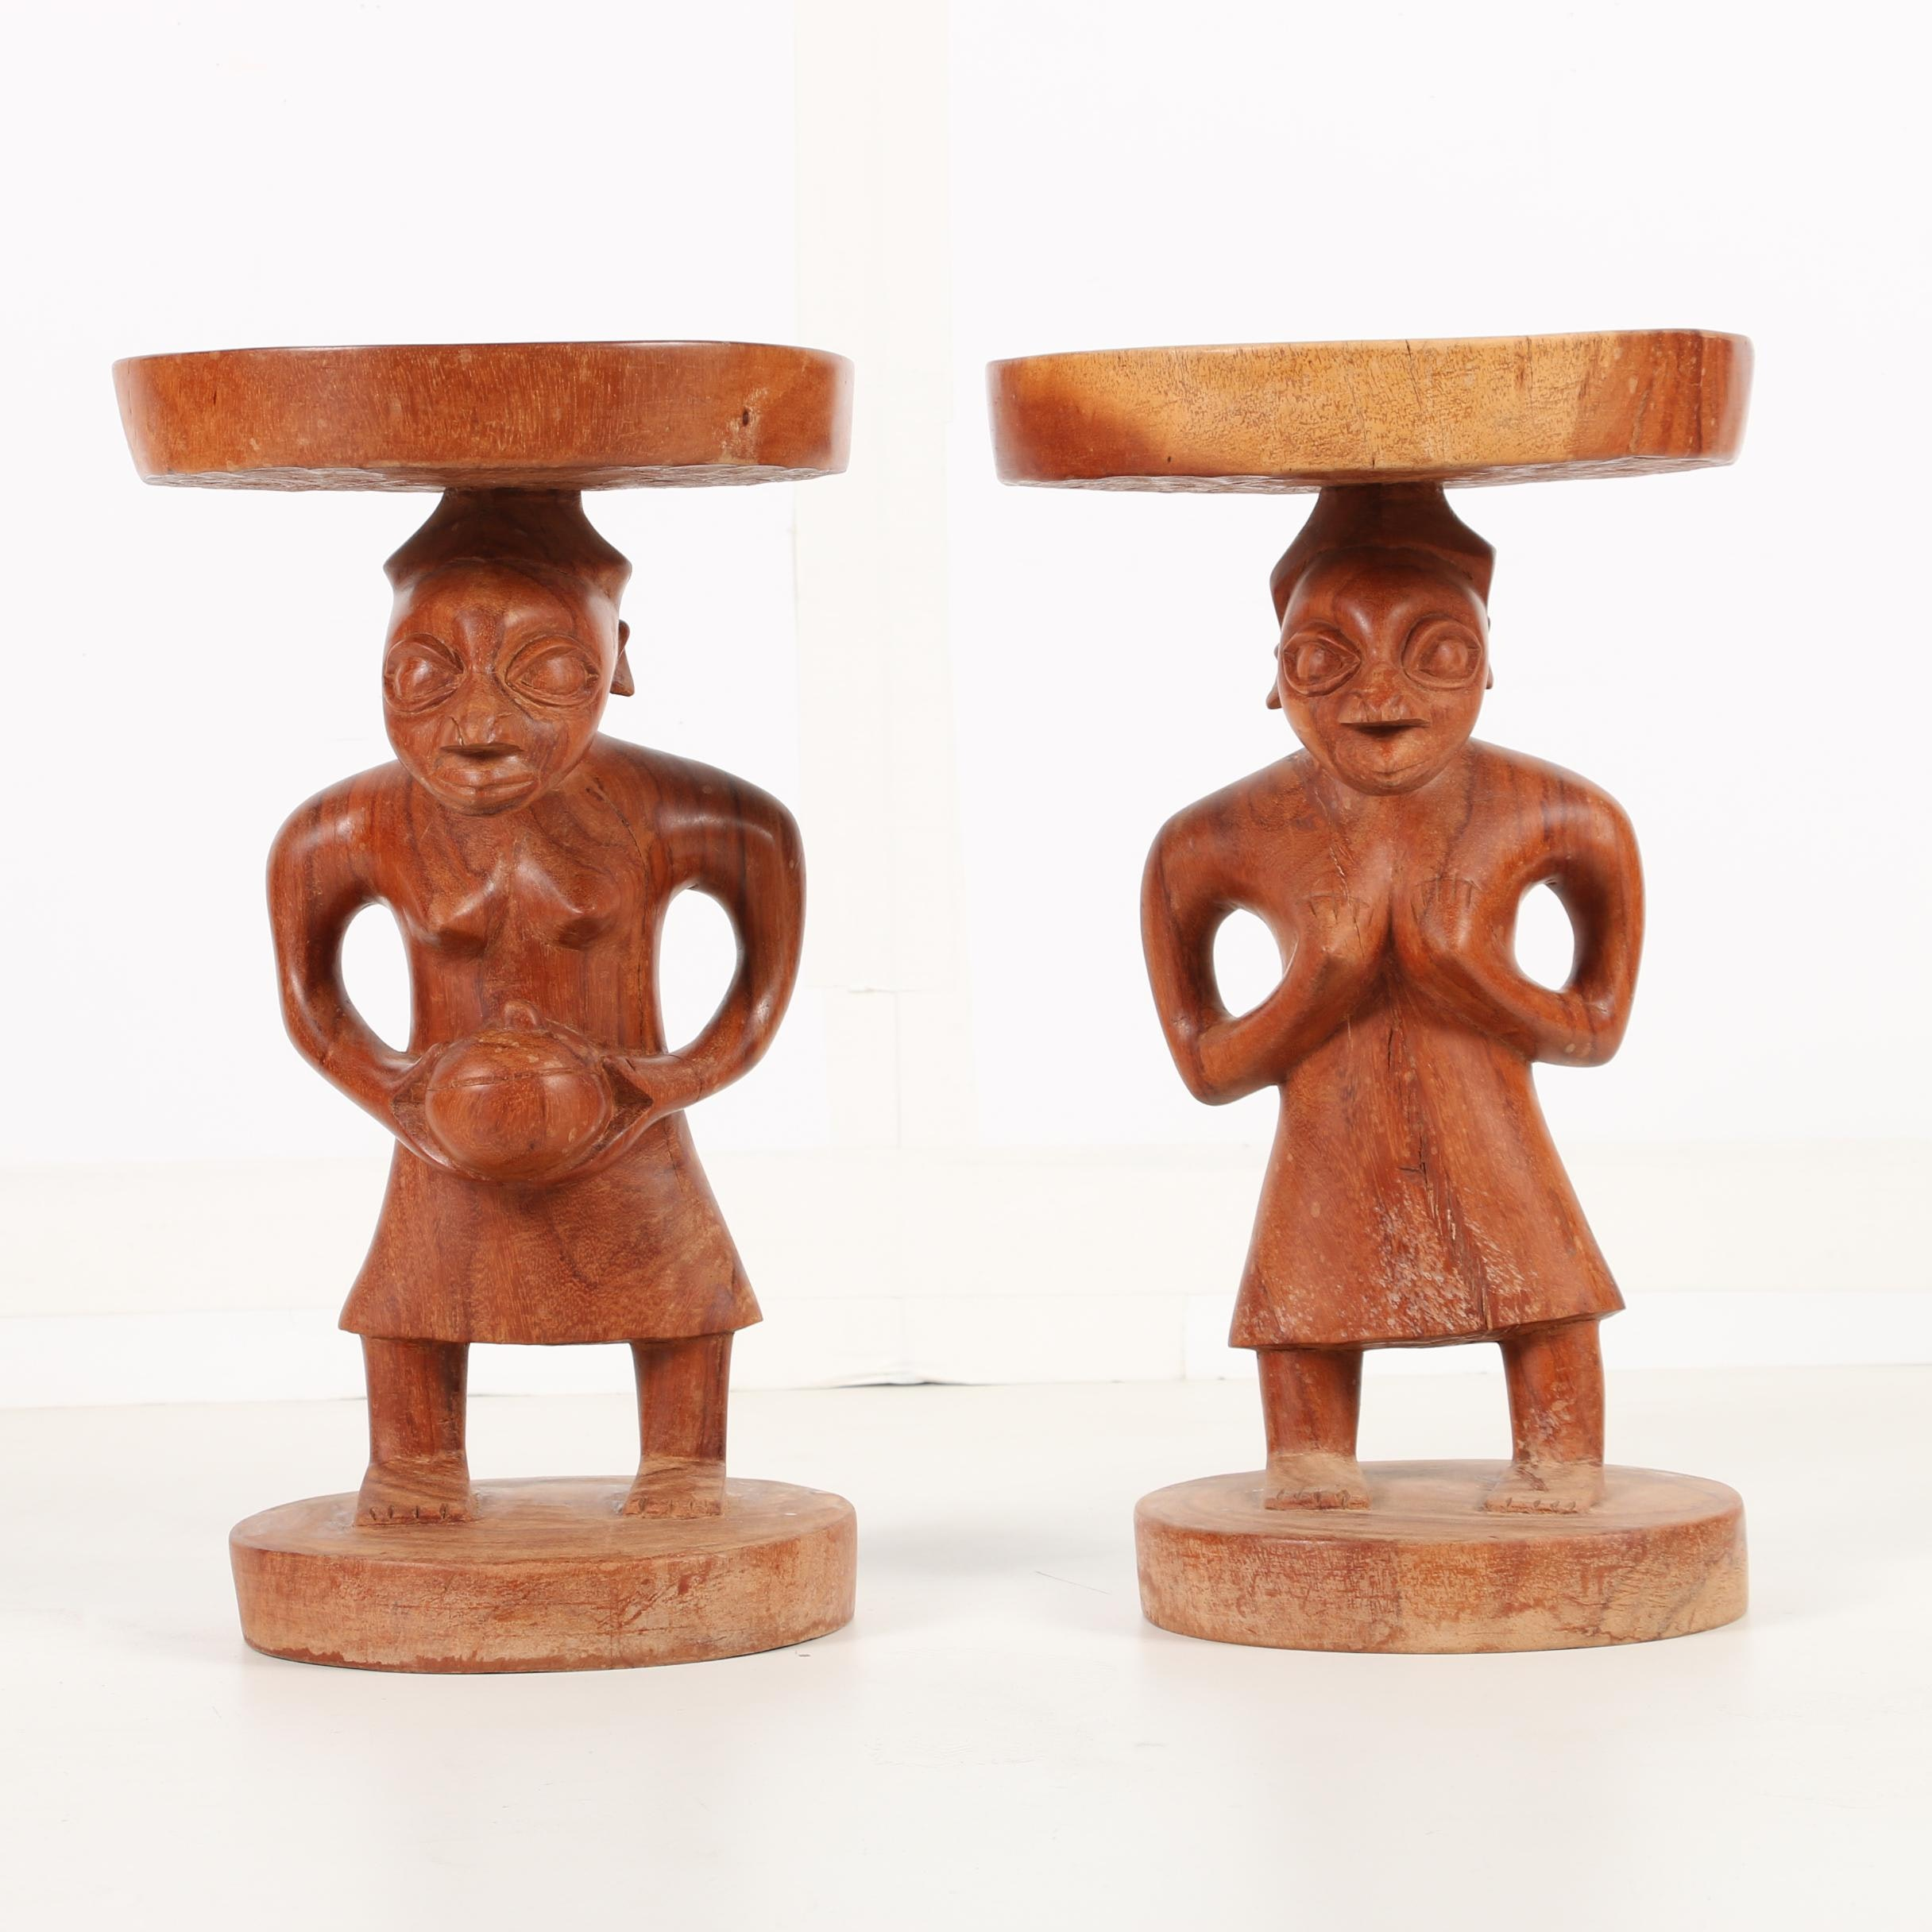 West African Carved Wooden Figural Stools